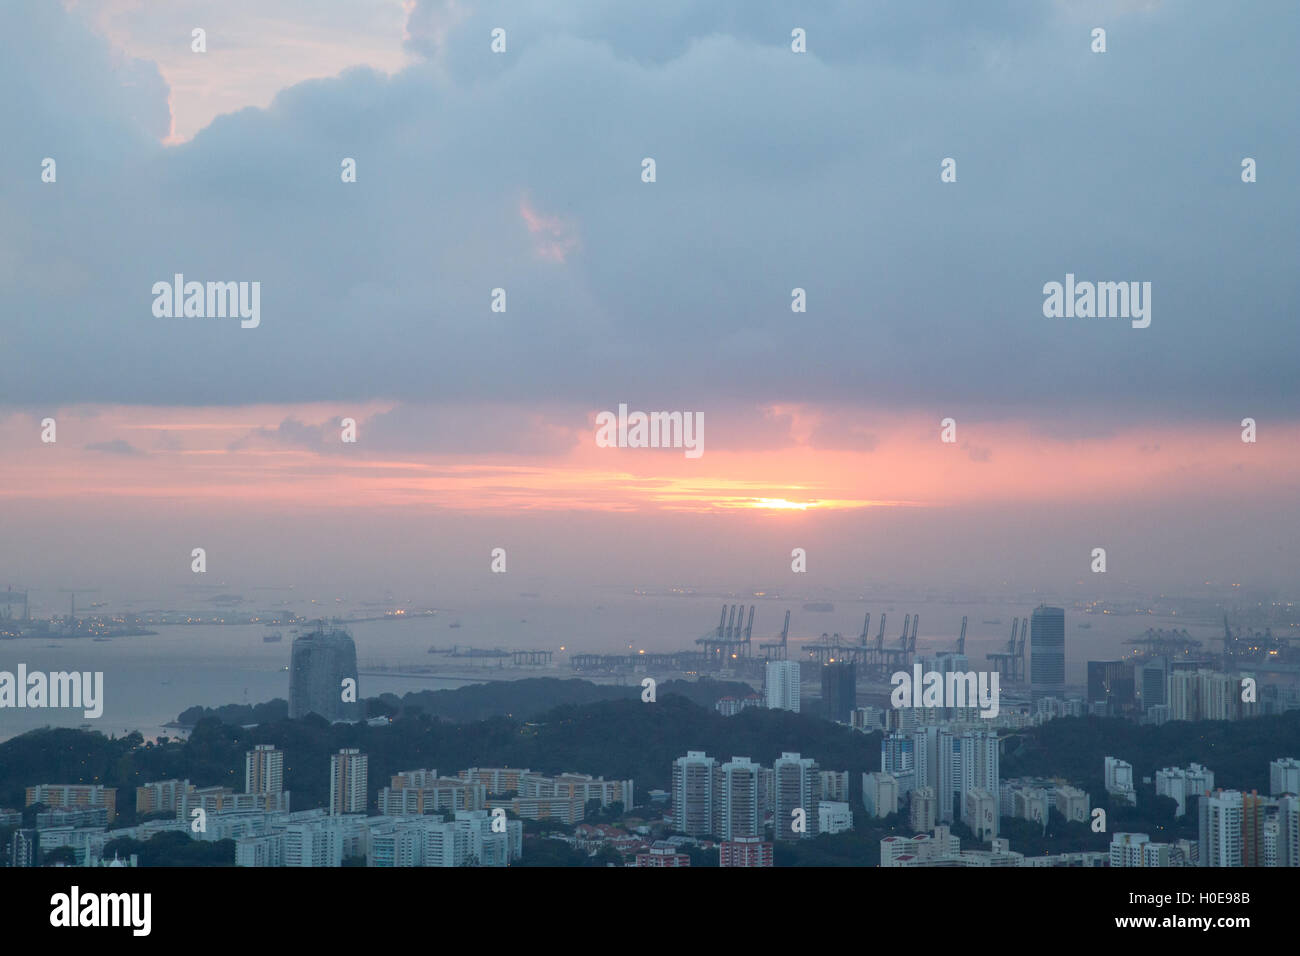 Sunset over Singapore - Stock Image